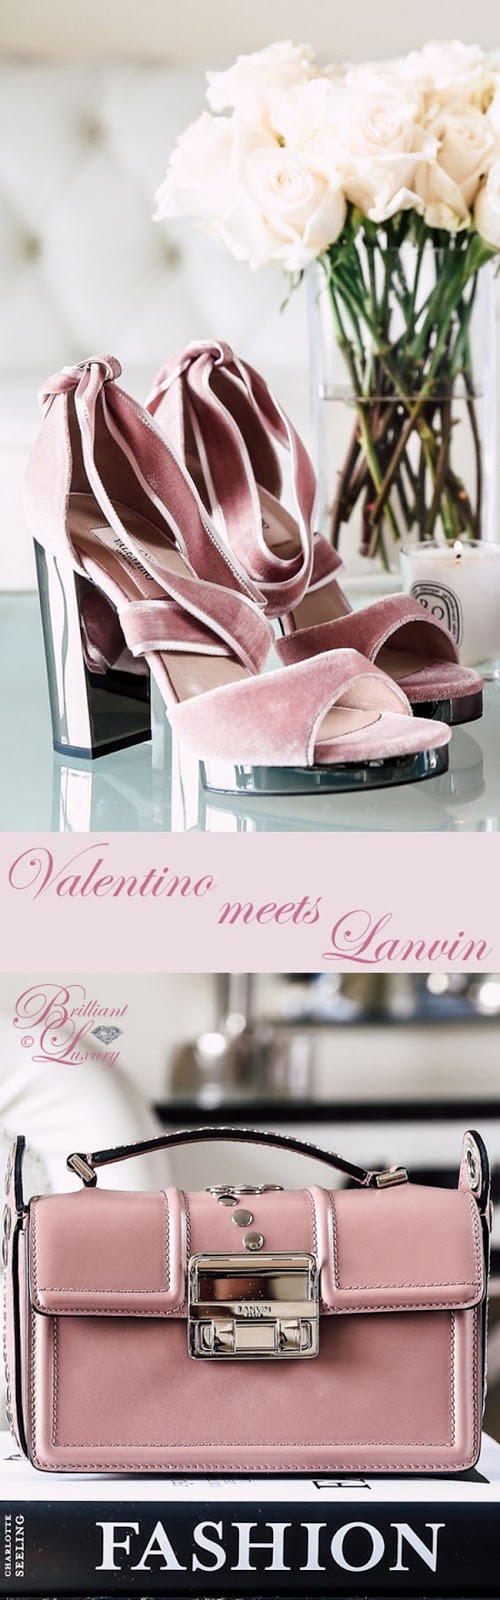 Brilliant Luxury ♦ Valentino meets Lanvin